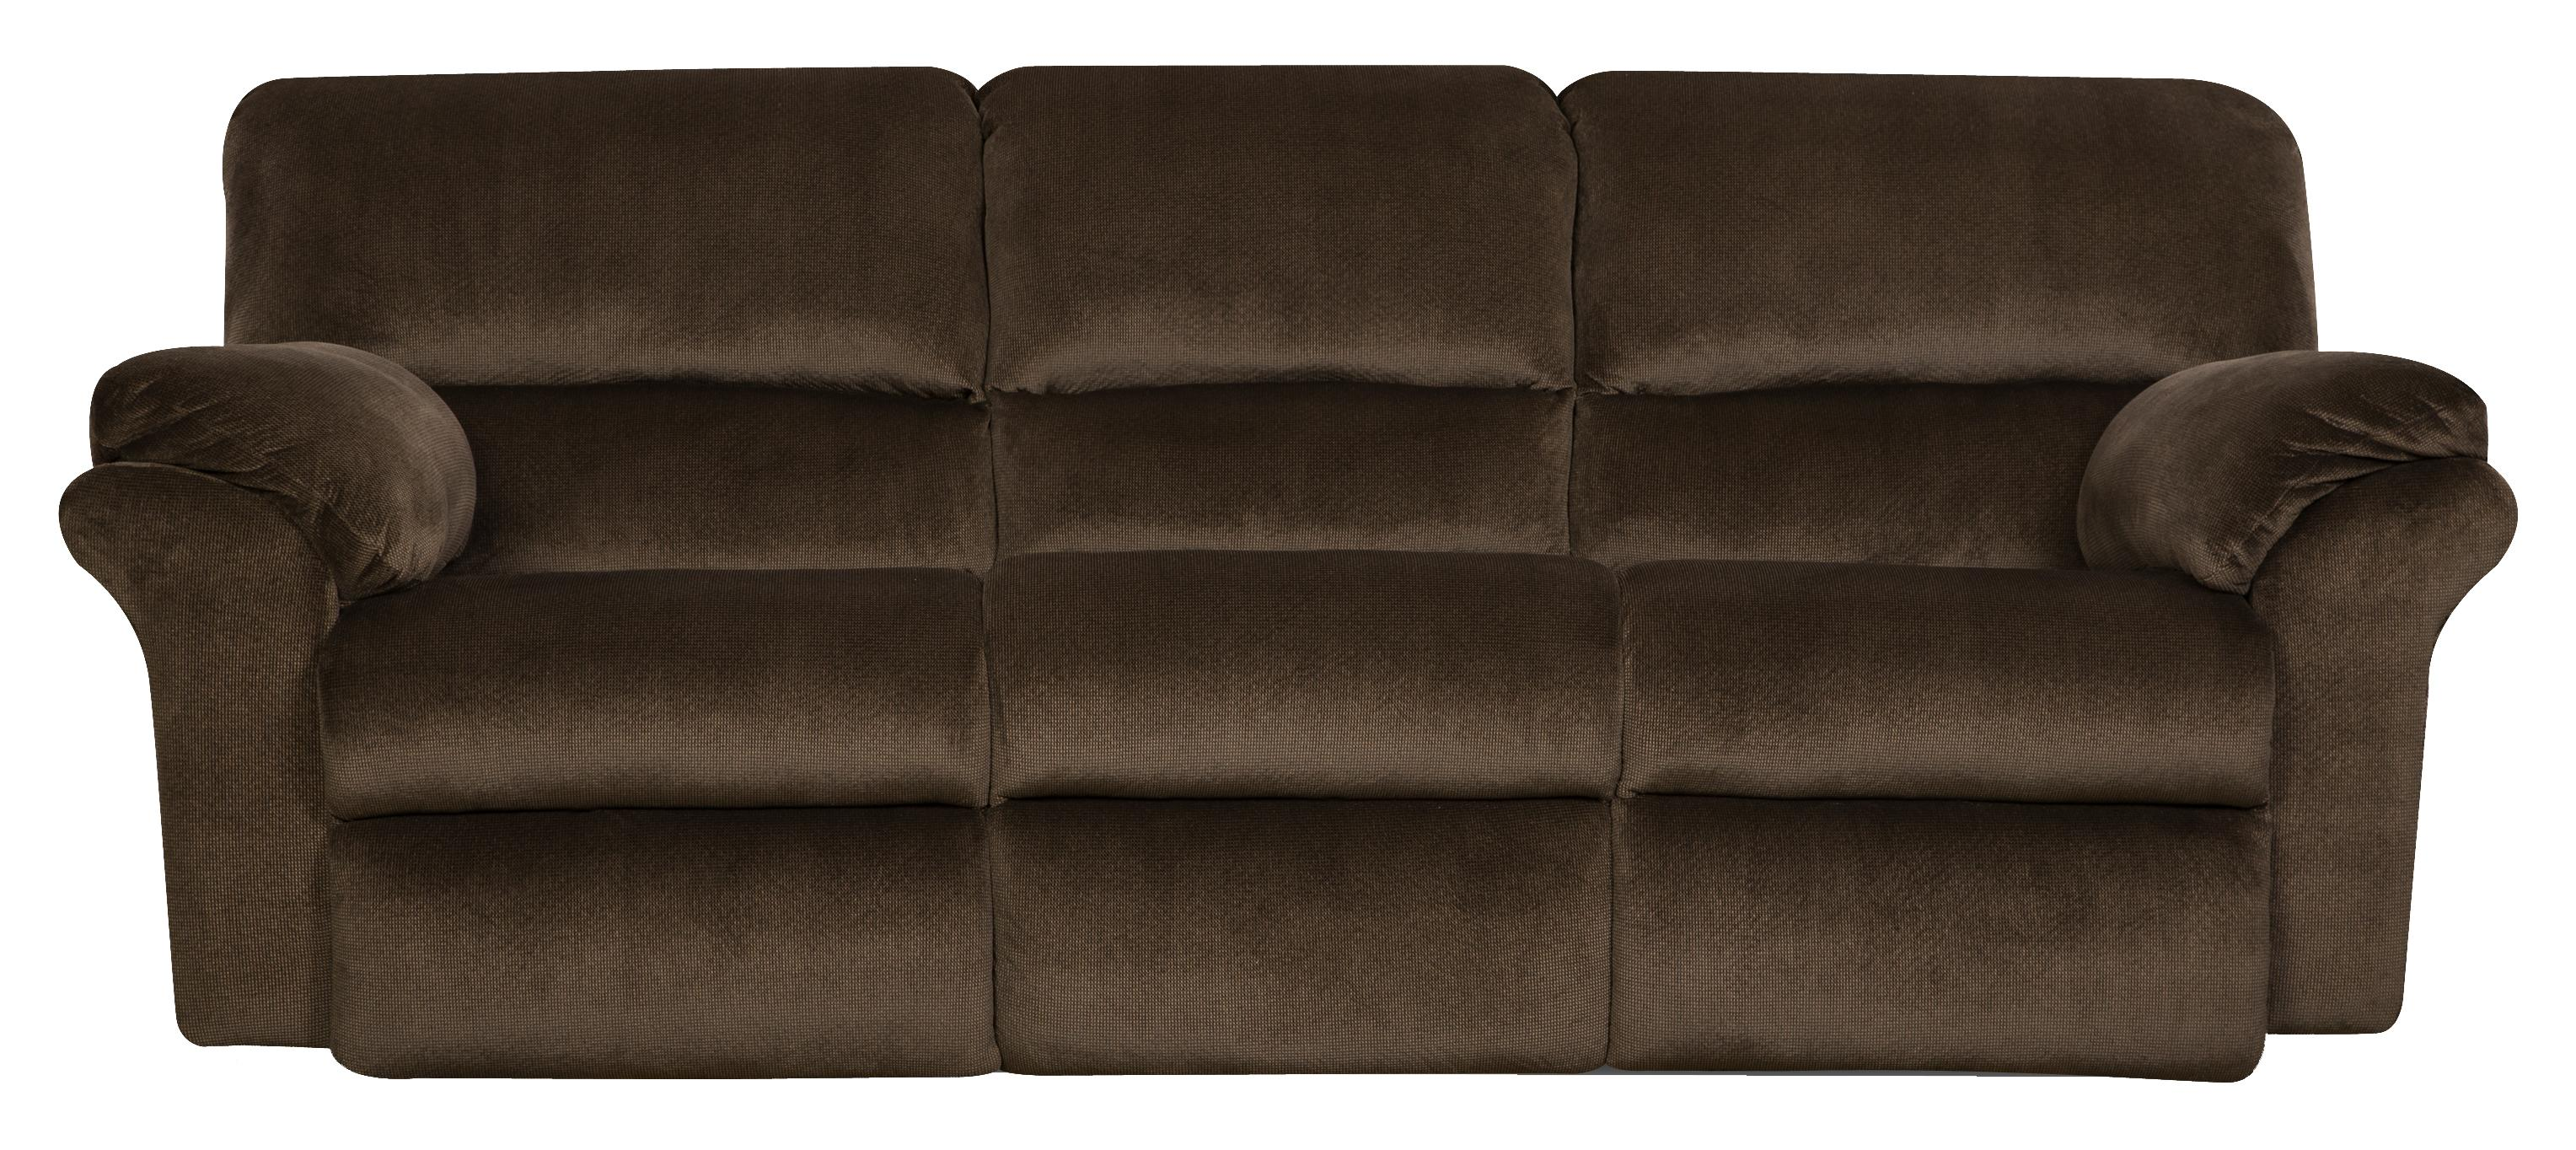 sofa southern motion where to buy online reclining savannah